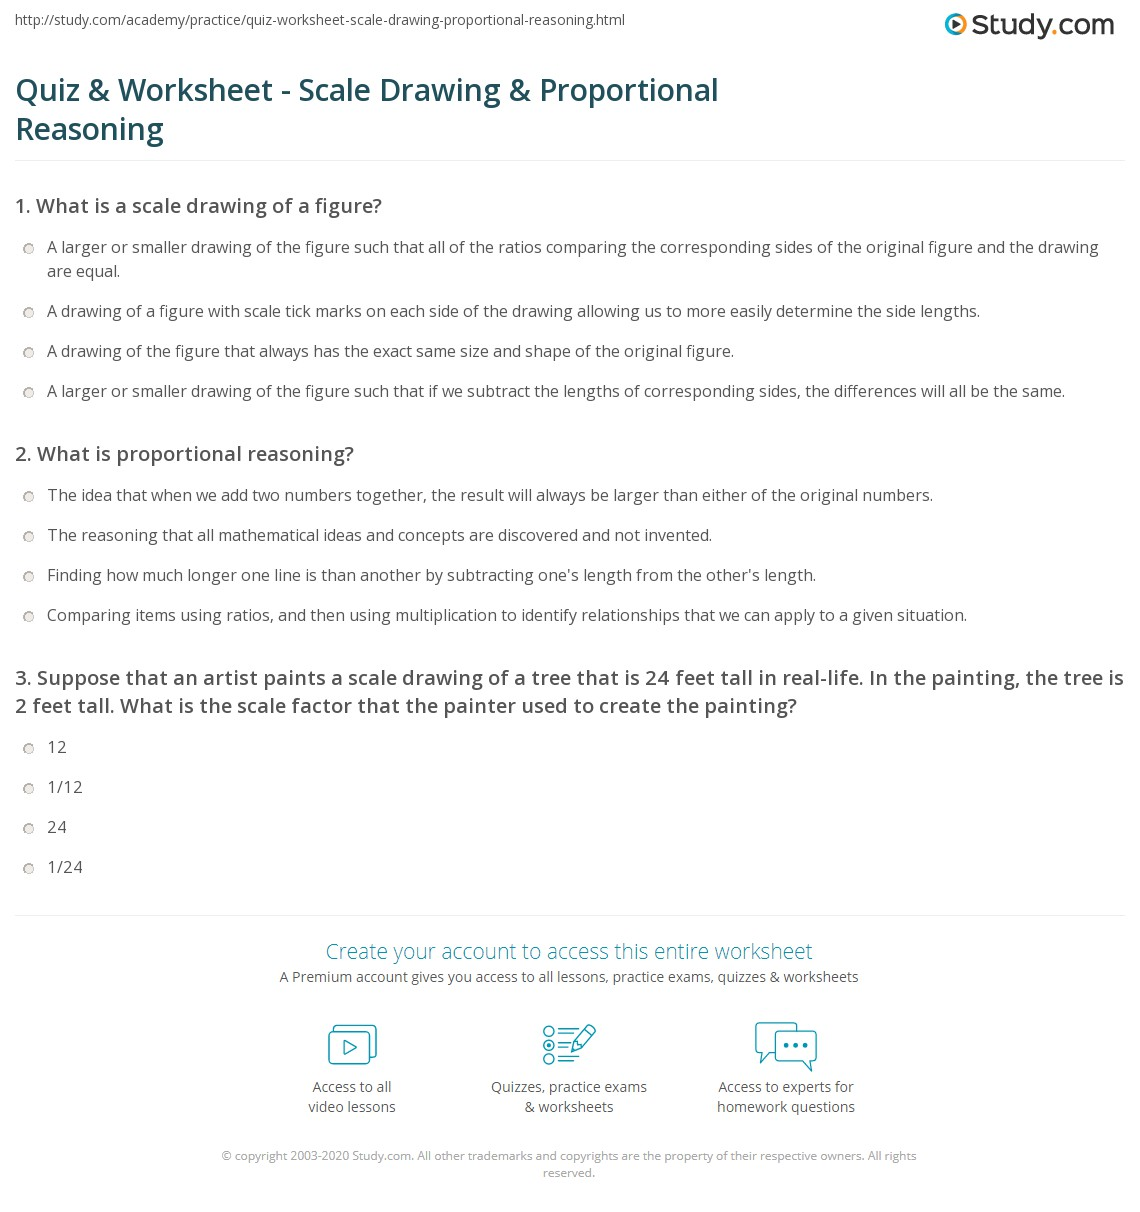 quiz worksheet scale drawing proportional reasoning. Black Bedroom Furniture Sets. Home Design Ideas